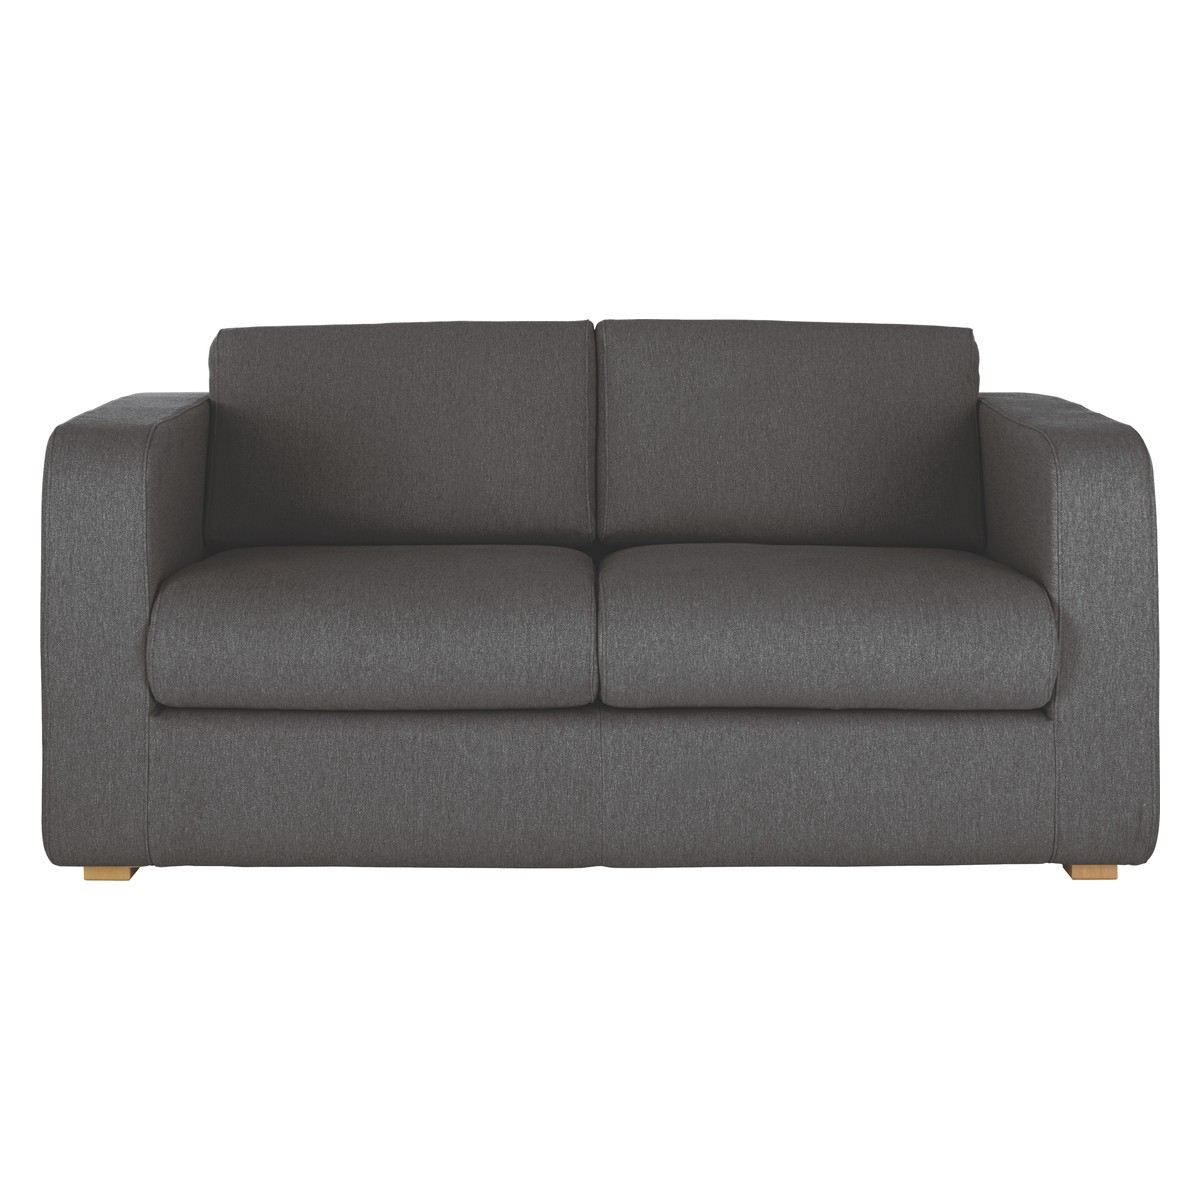 Porto Charcoal Fabric 2 Seater Sofa Bed Buy Now At Habitat Uk Regarding Two Seater Chairs (Image 10 of 15)